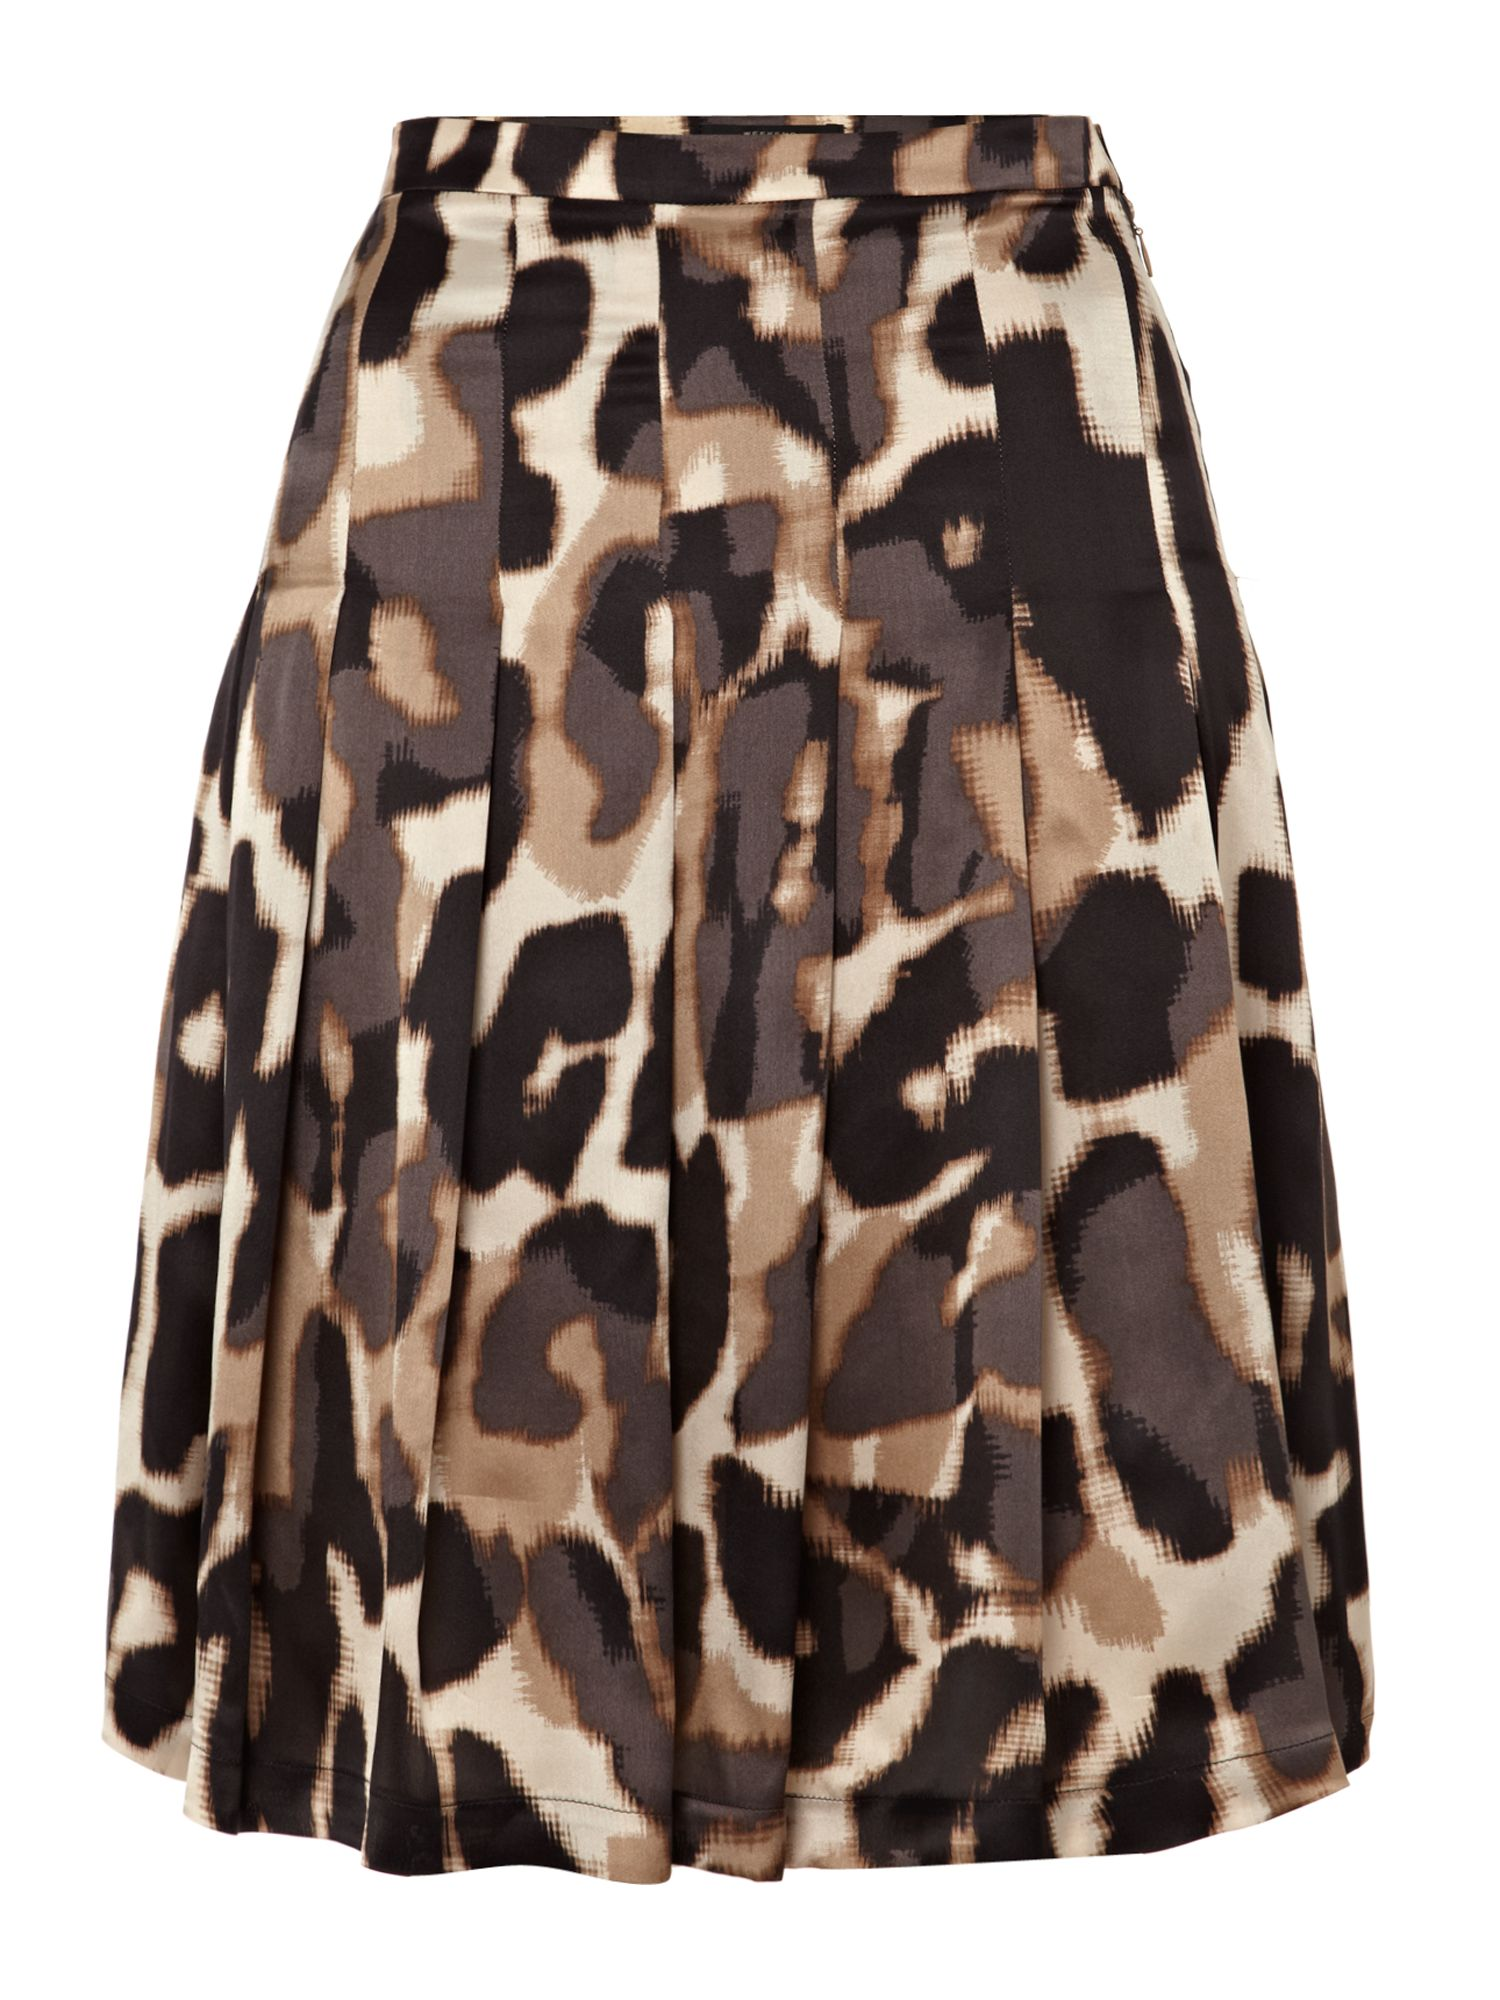 Piroga animal print knee length skirt